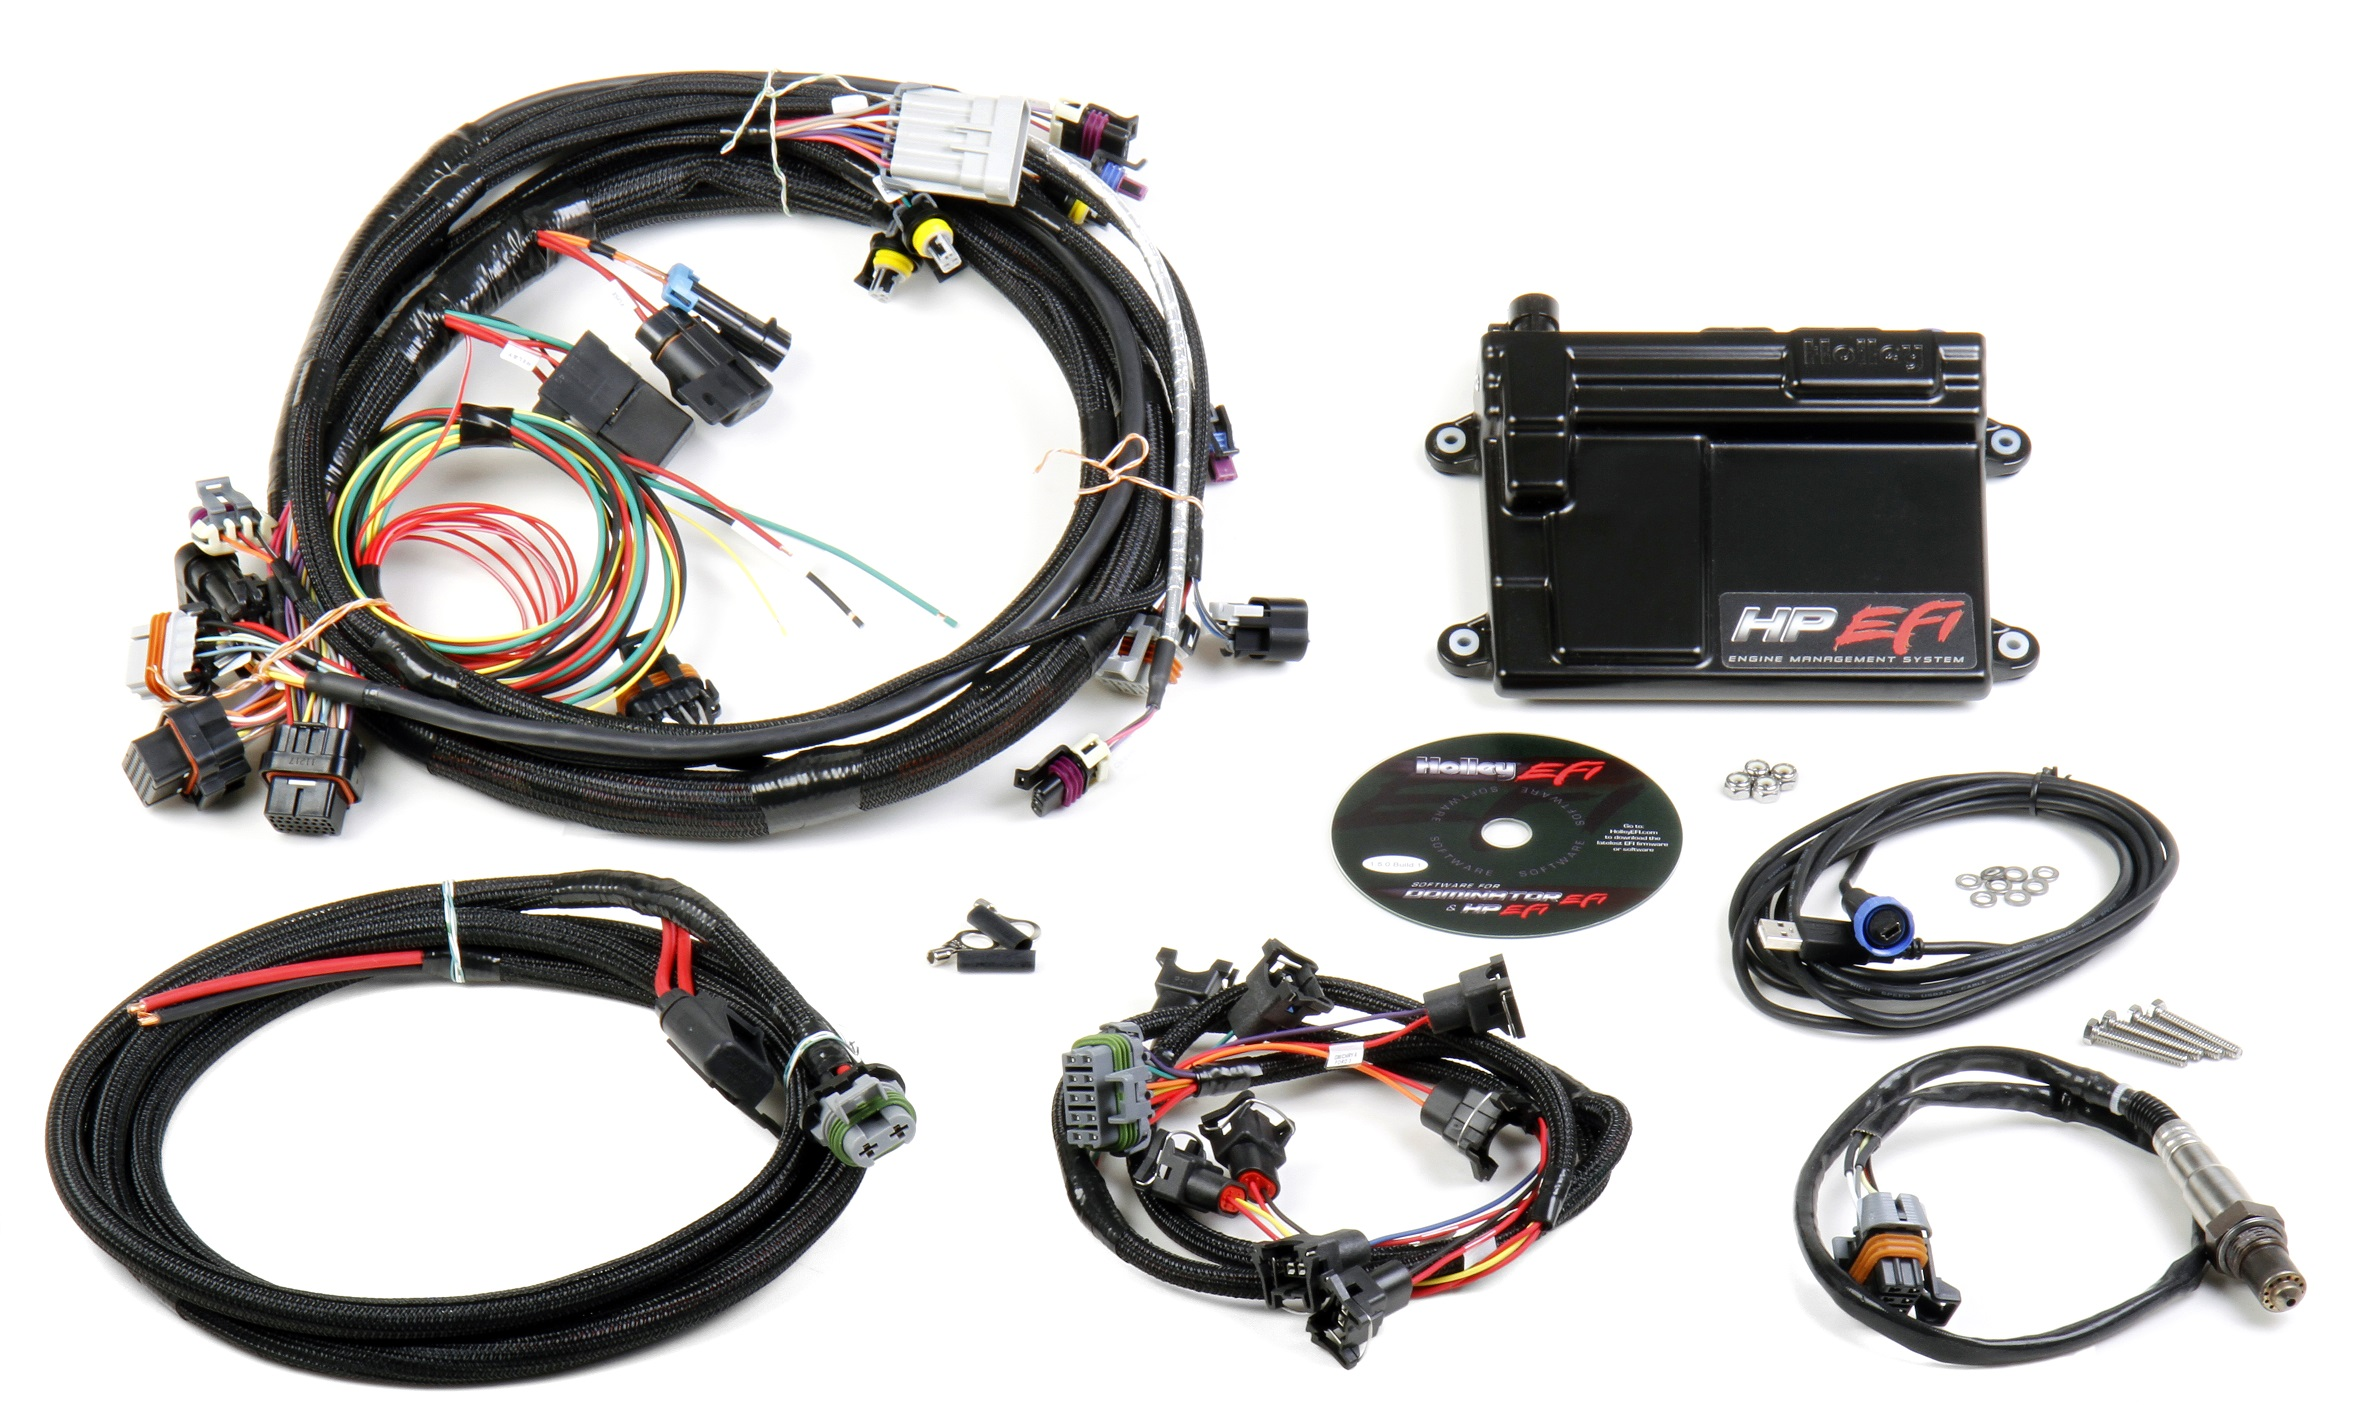 550 602 standalone ls1 ls6 wiring harness with ecu sikky ls6 wiring harness at aneh.co